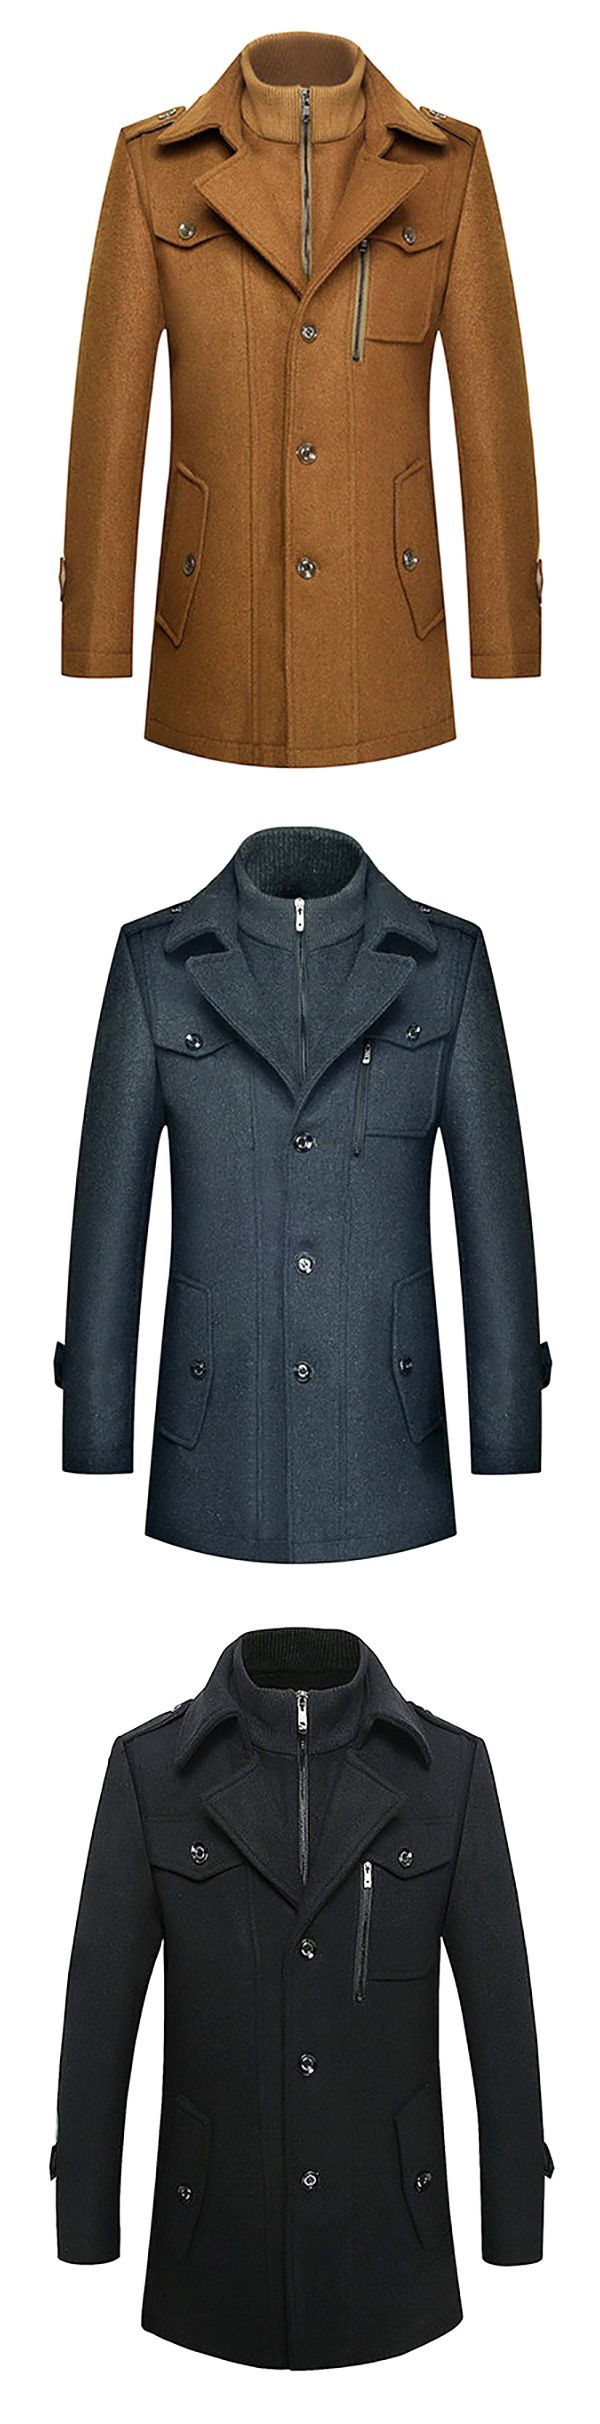 Winter Thickened Woolen Coat #mensfashion #men #outfits